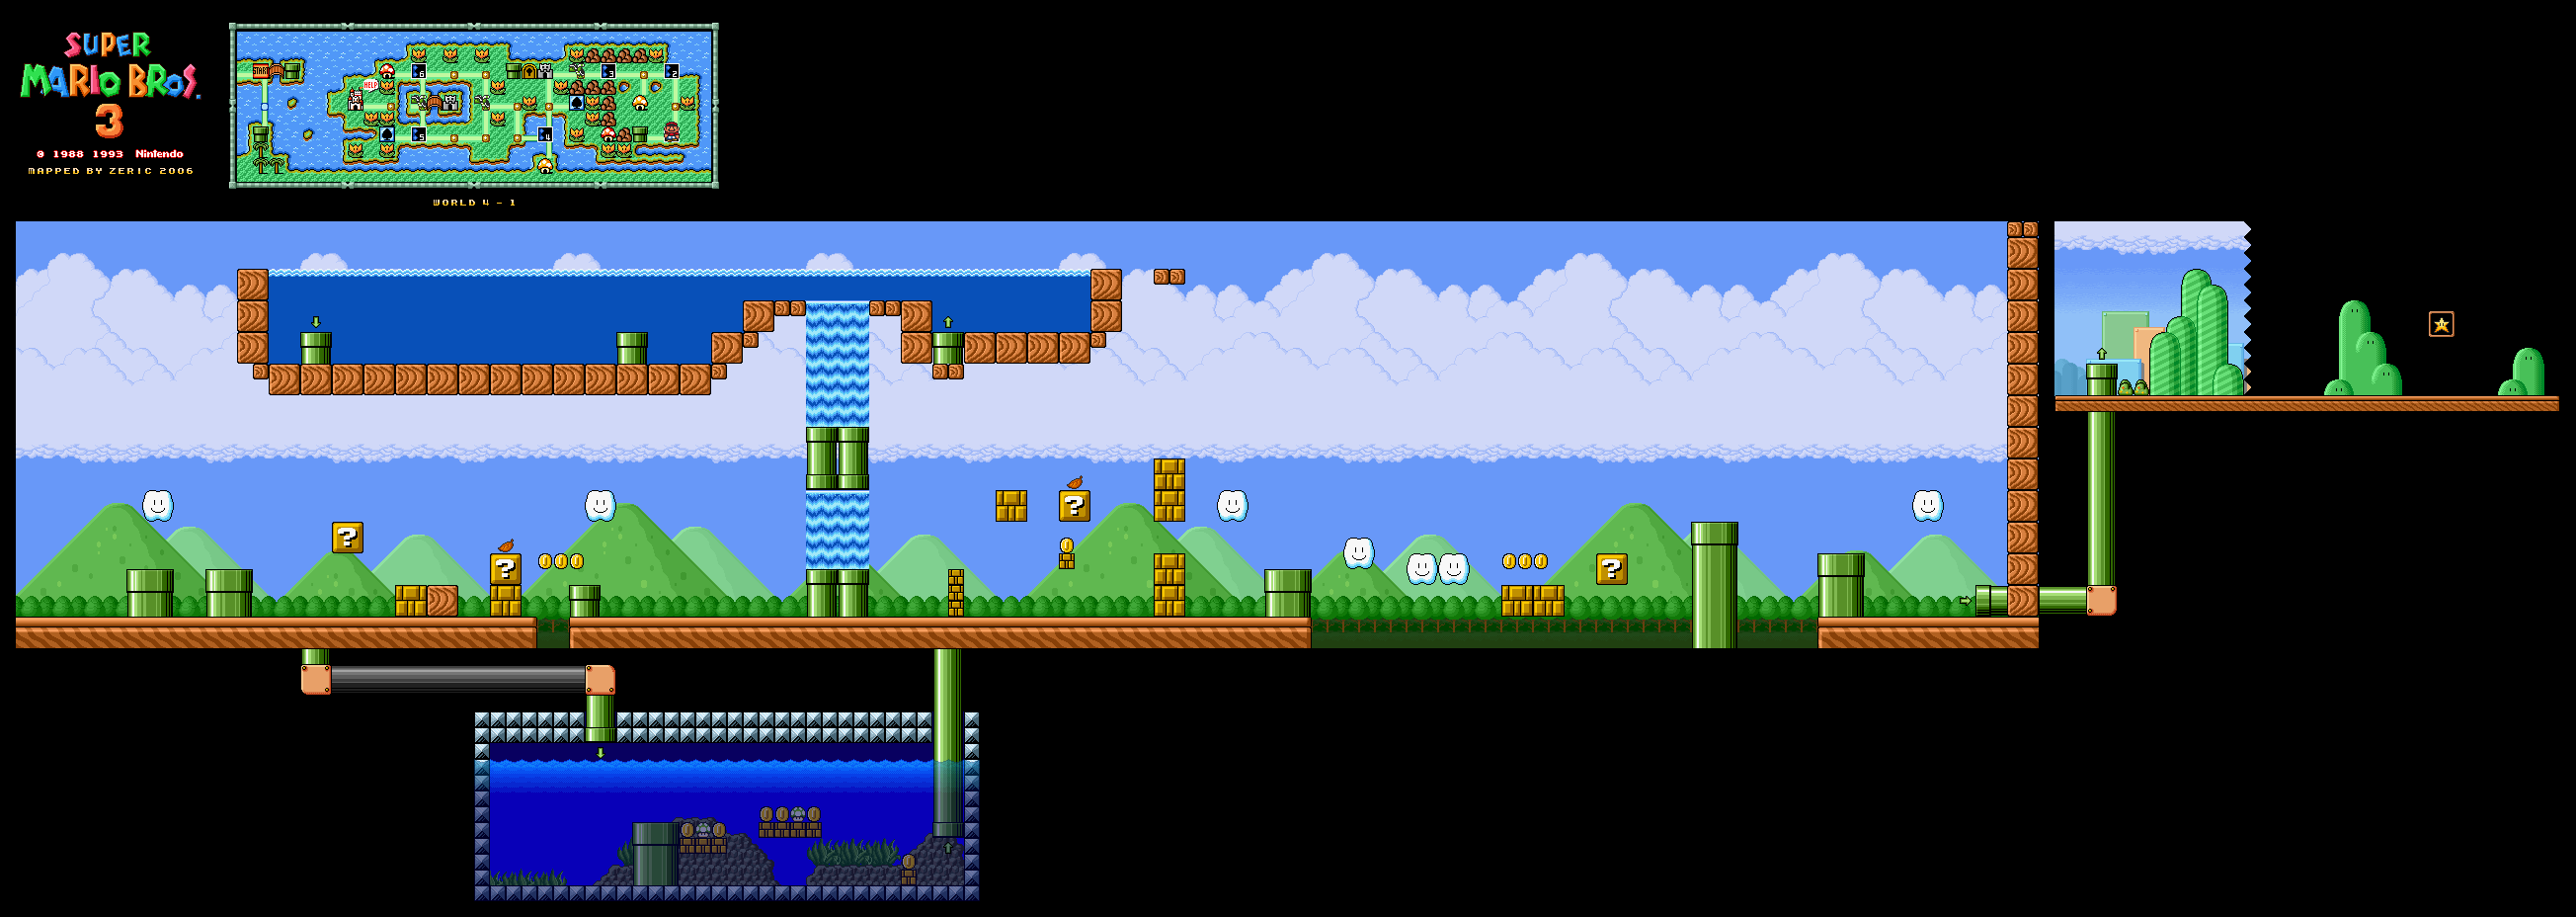 Super Mario All Stars Super Mario Bros 3 Snes Game Maps Download